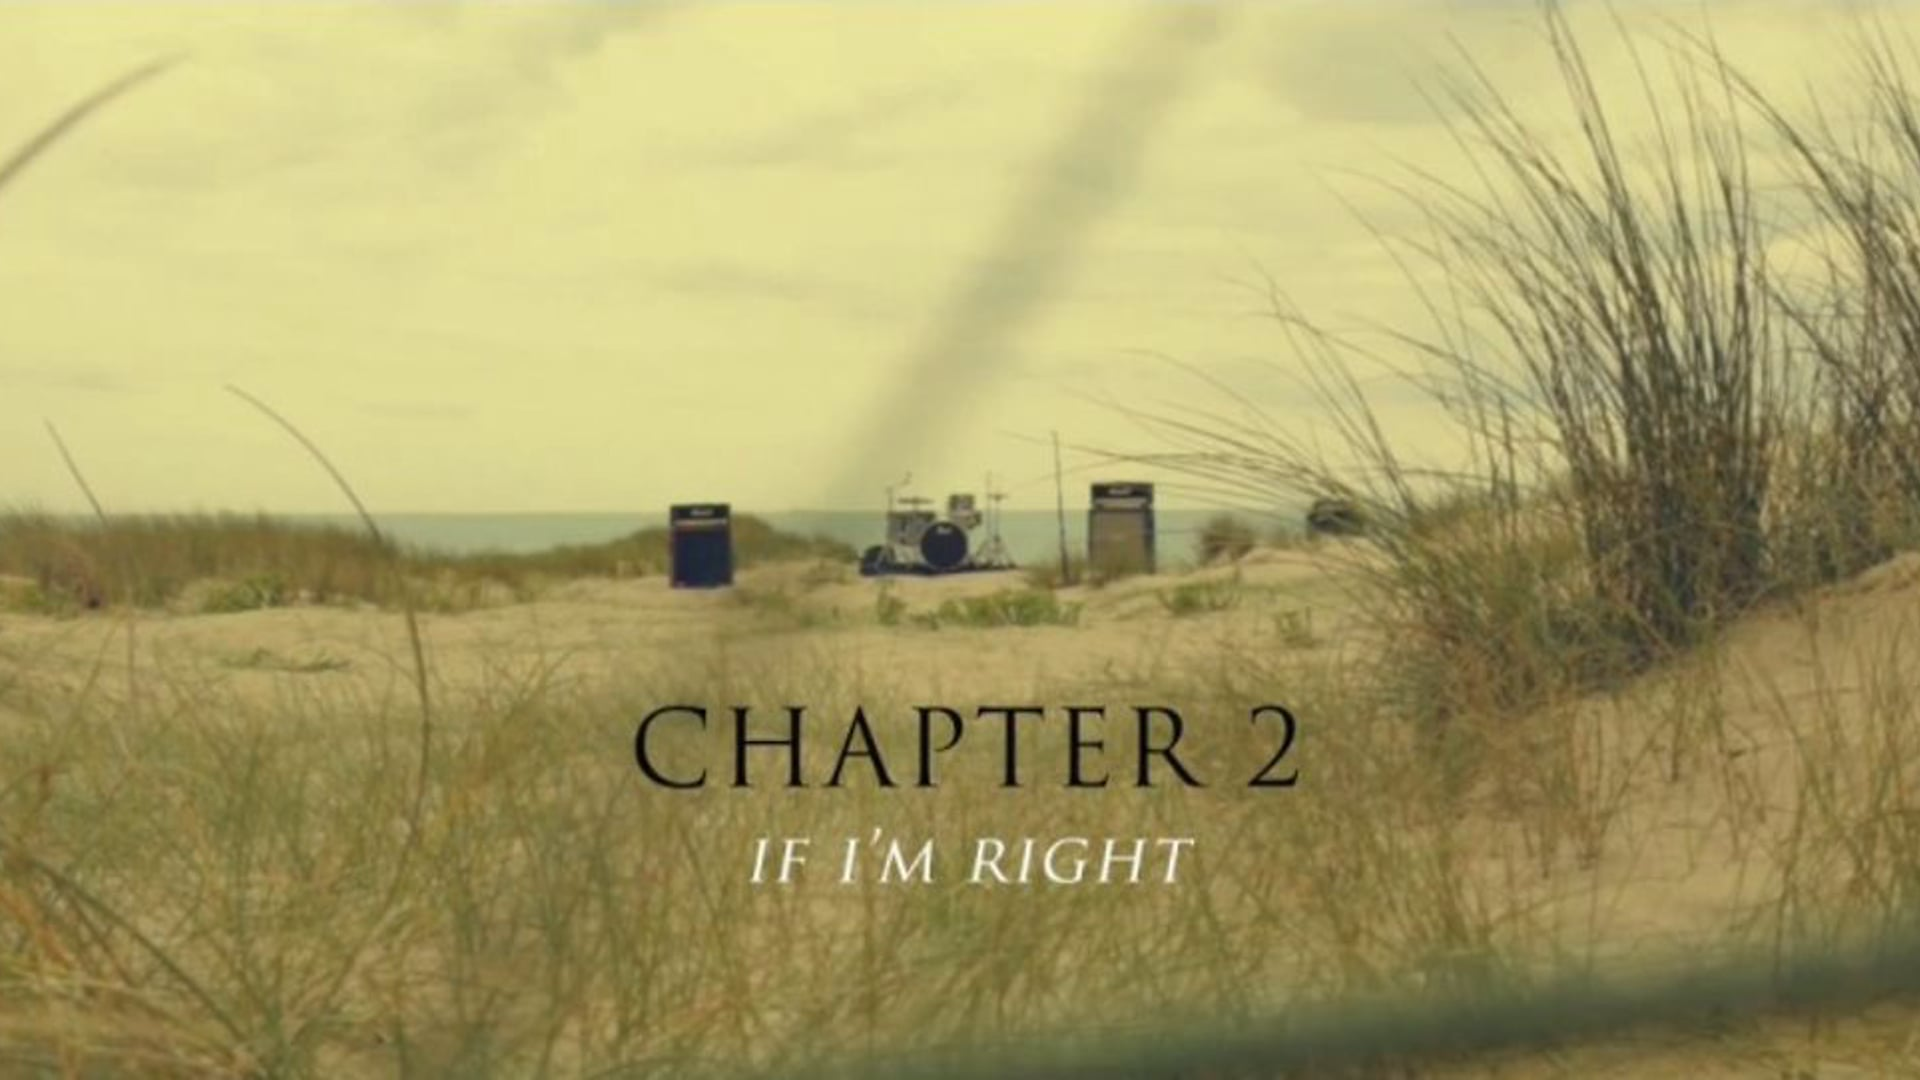 HALOS AROUND - chapter 2 / If i'm right